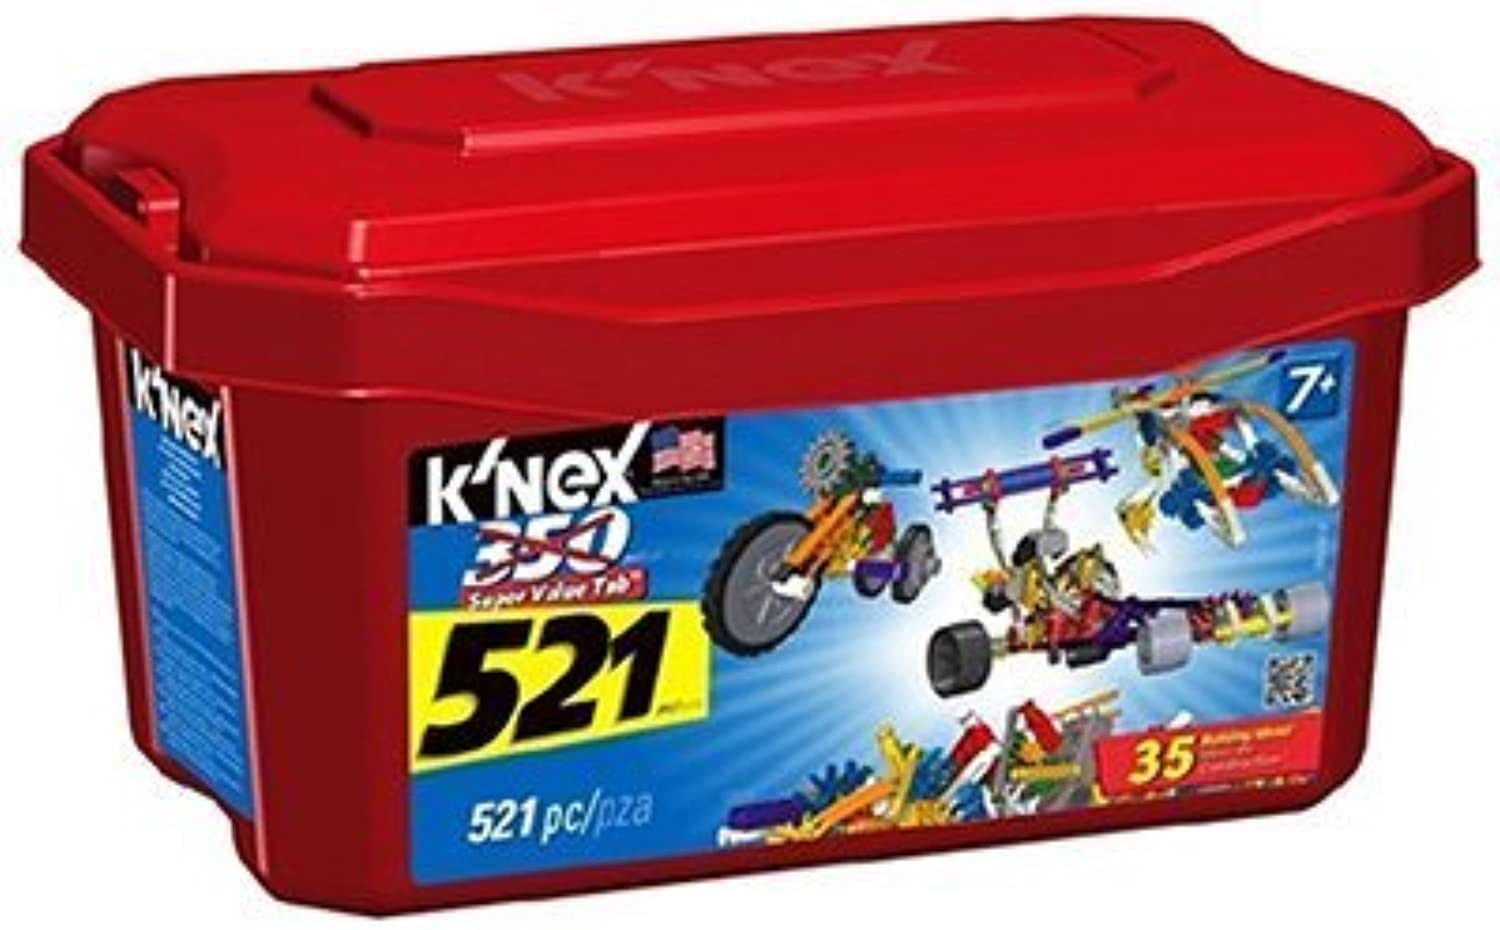 Knex Limited Partnership Group 12575 Building Set, 521-Pc. by Knex Limited Partnership Group